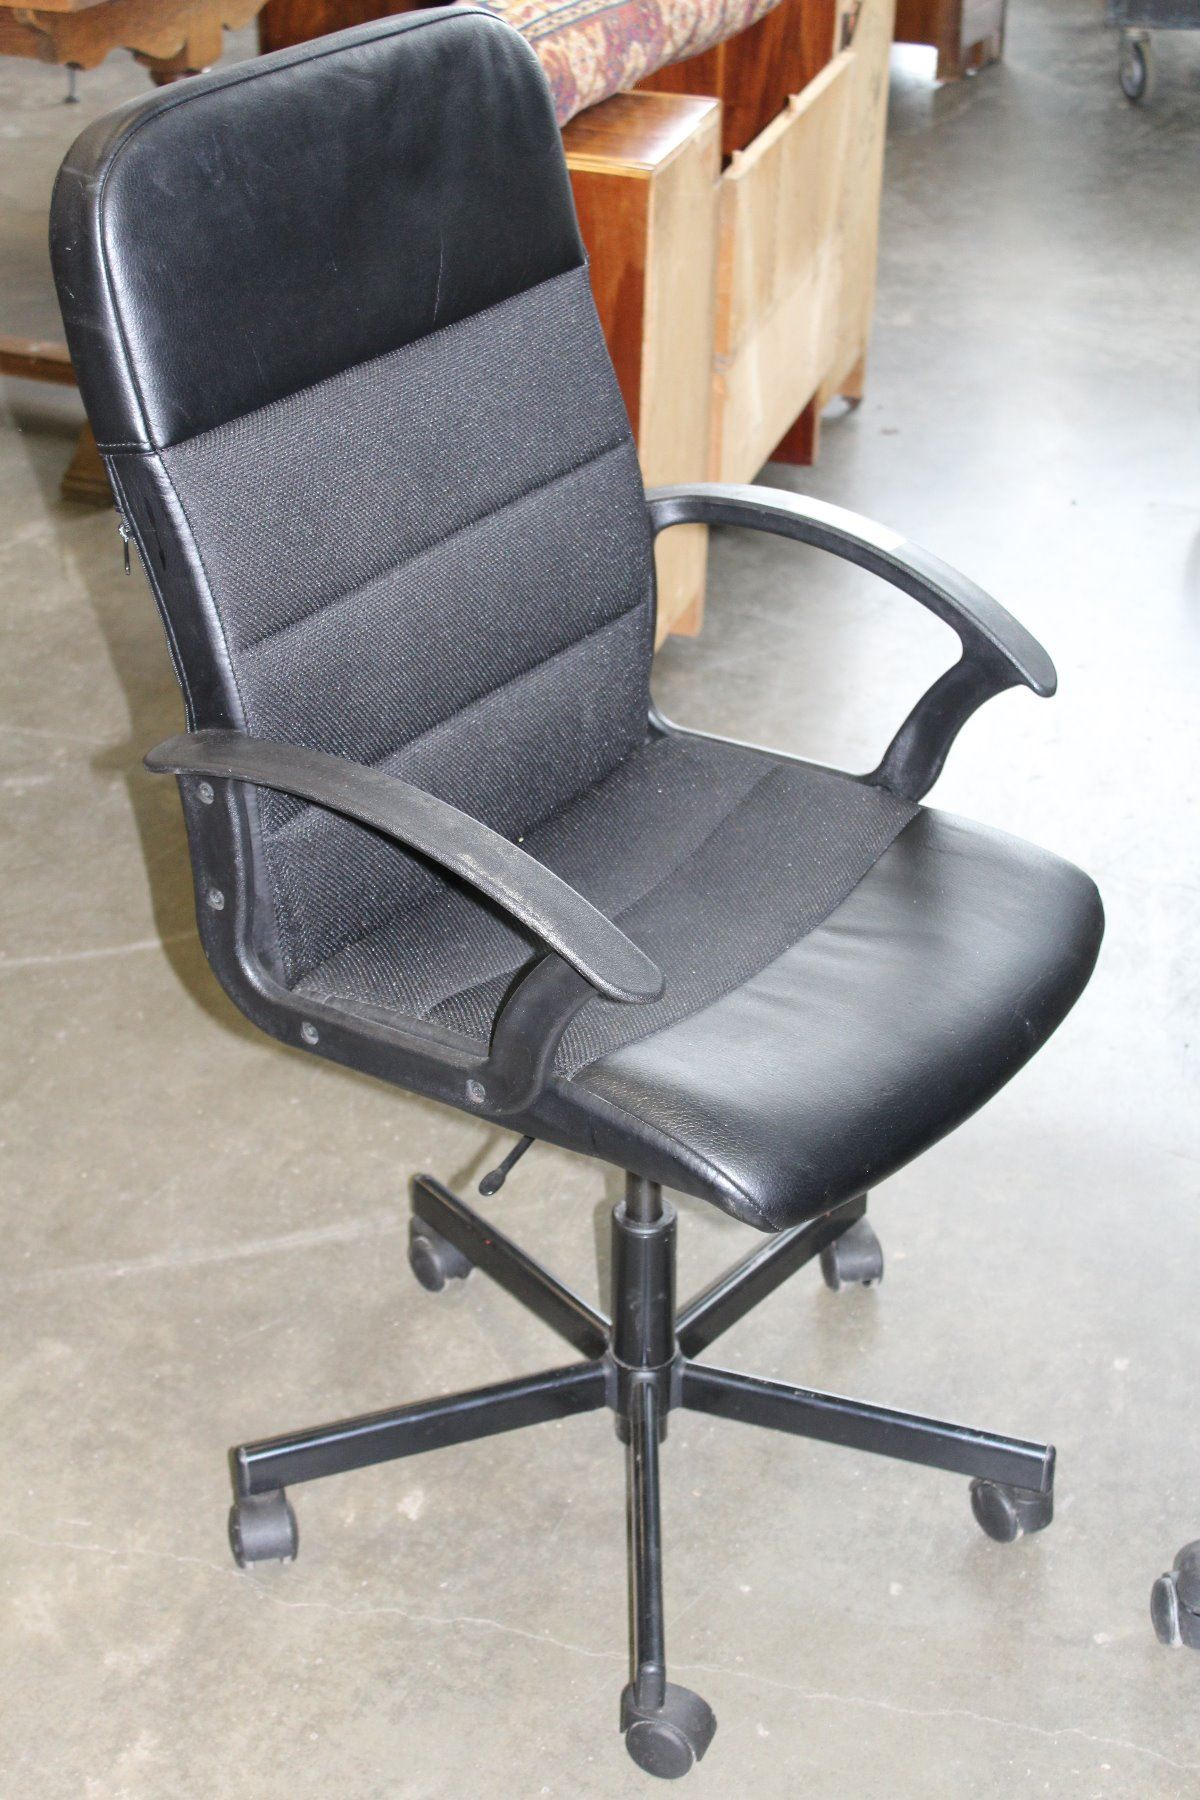 black rolling office chair. Black Bedroom Furniture Sets. Home Design Ideas